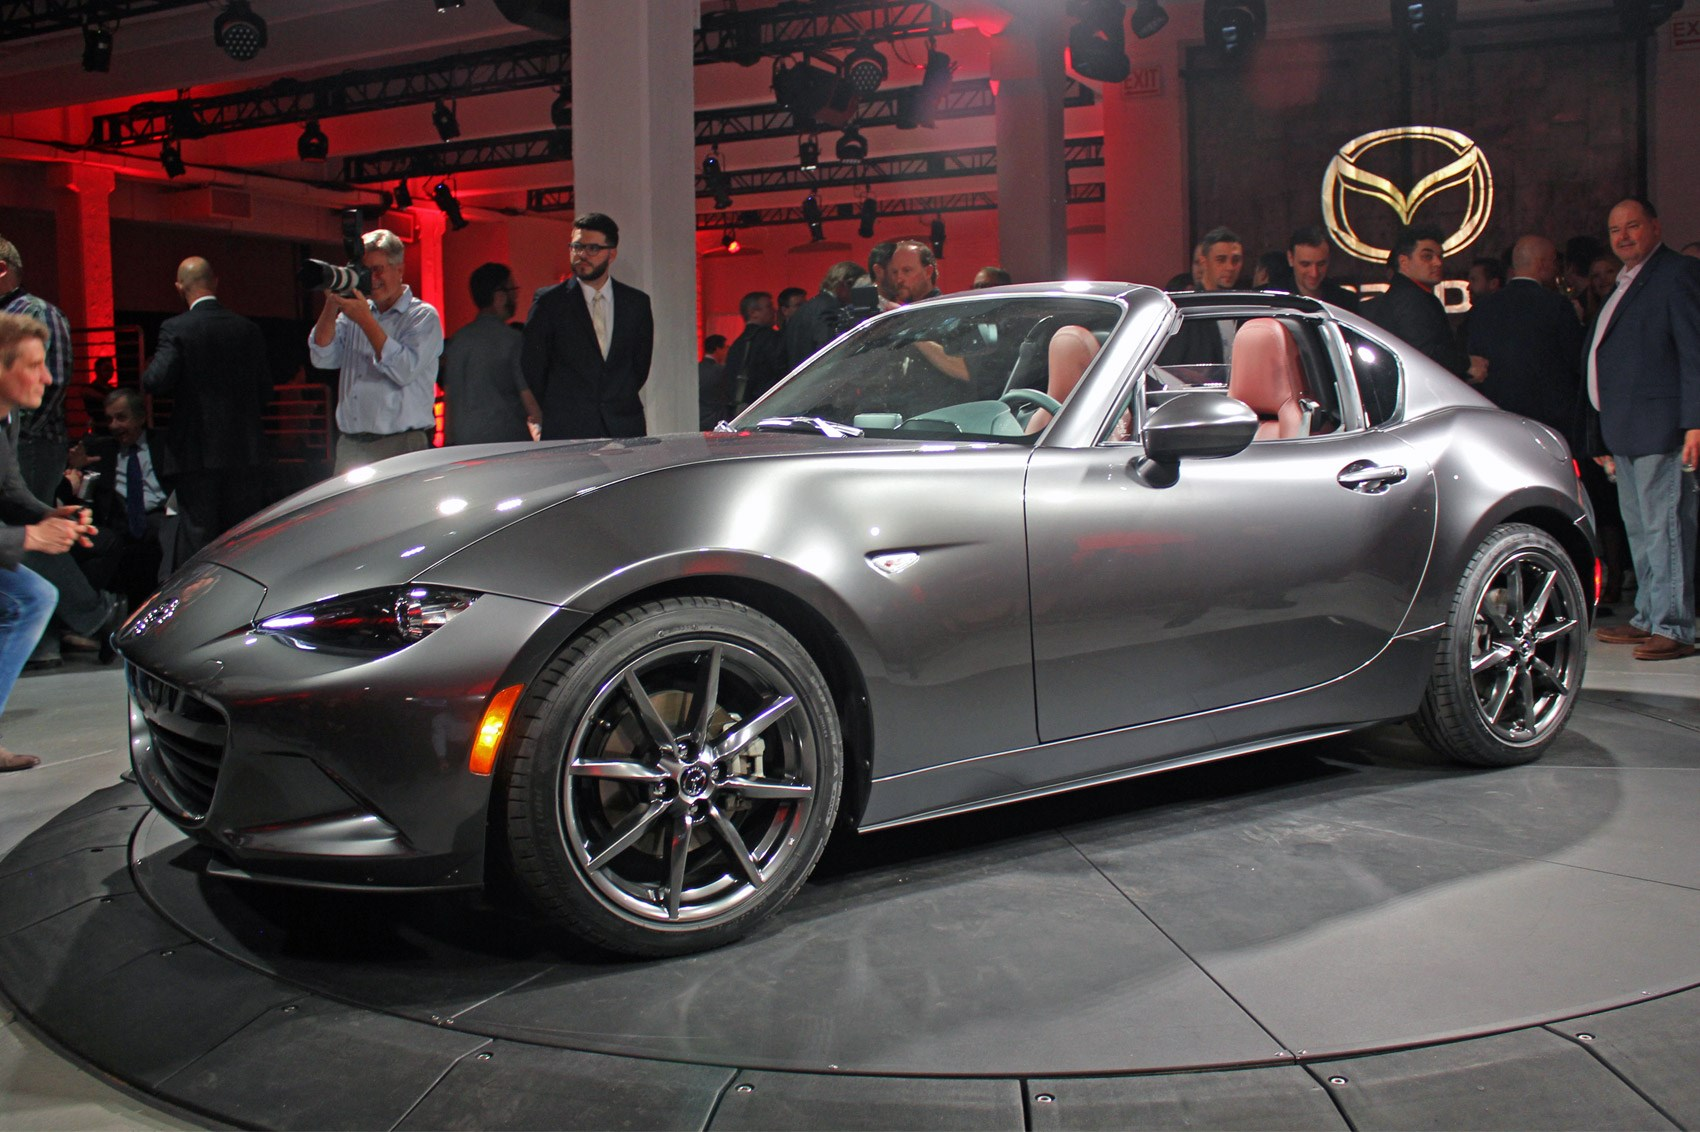 accessories shows front miata concept mazda performance three features news mx quarter new